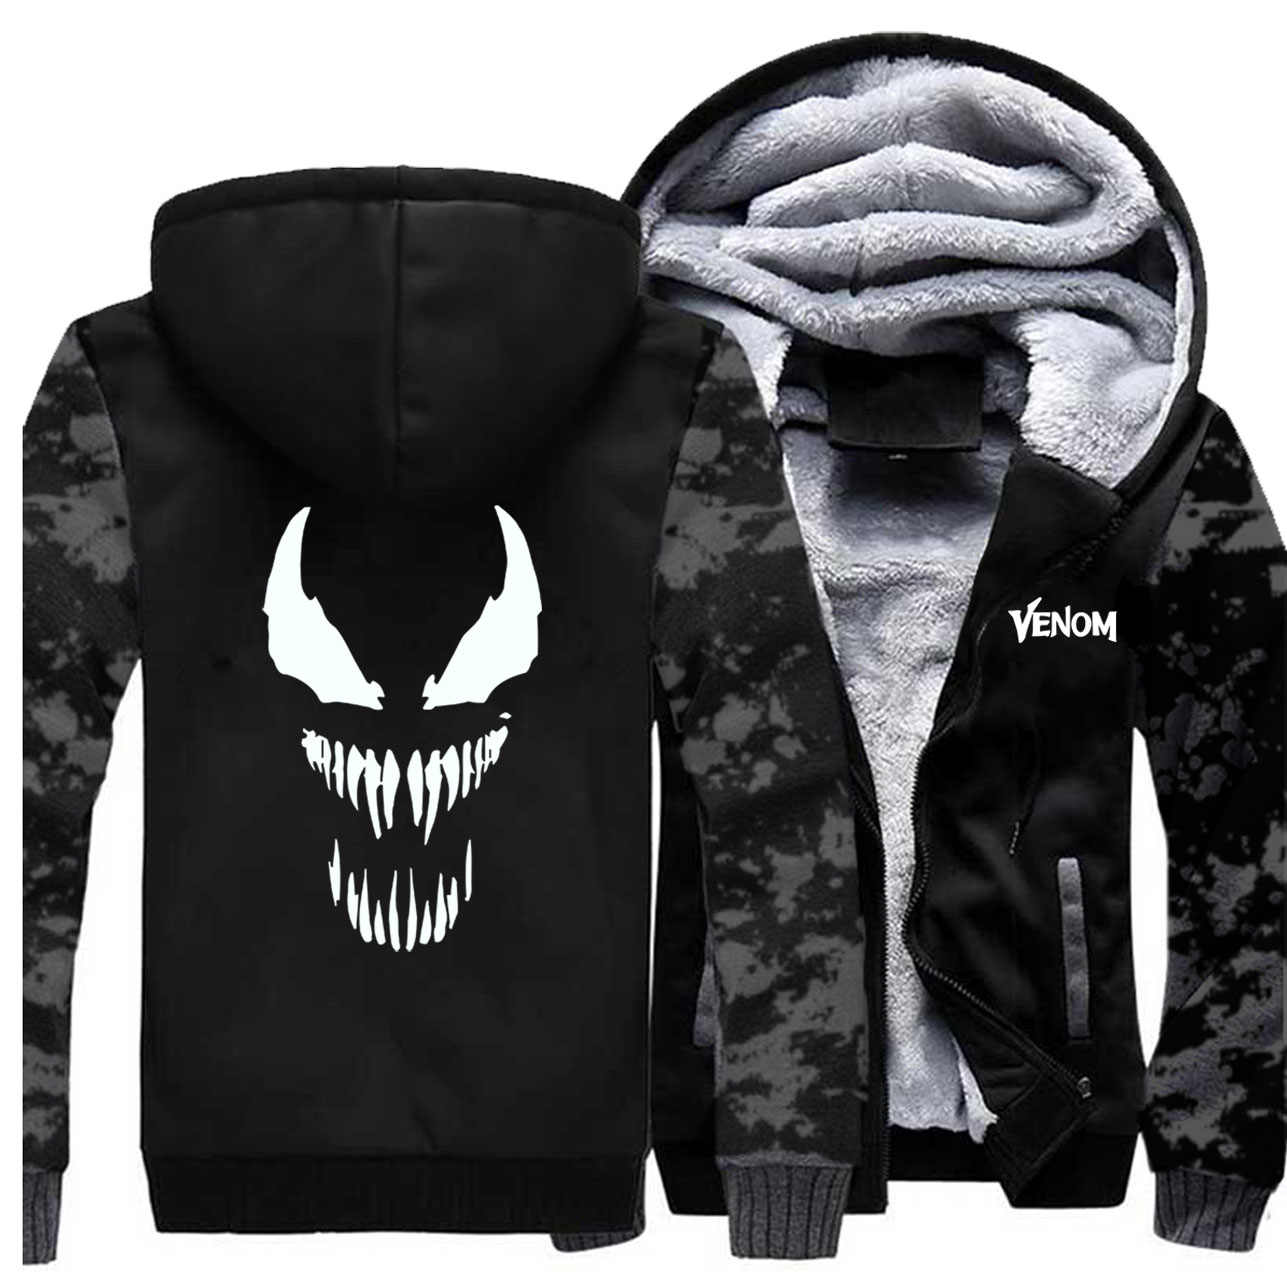 Venom Edward Jacken Männer Hoodies Sweatshirts Zipper Winter Dicke Fleece Superhero Mäntel Jacken Sportswear Camouflage Sportswear